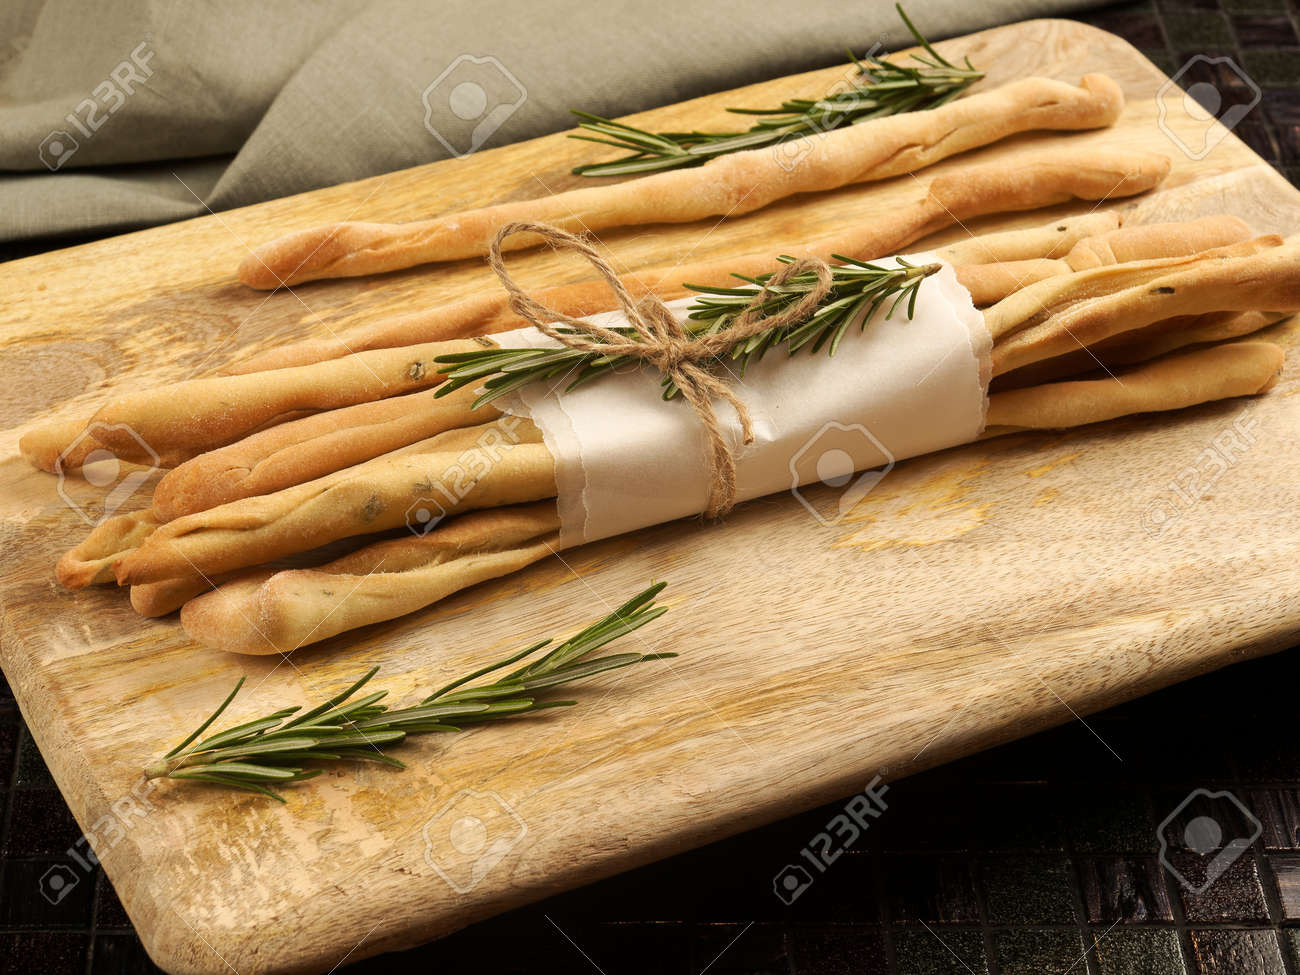 Homemade grissini with rosemary - 169668313